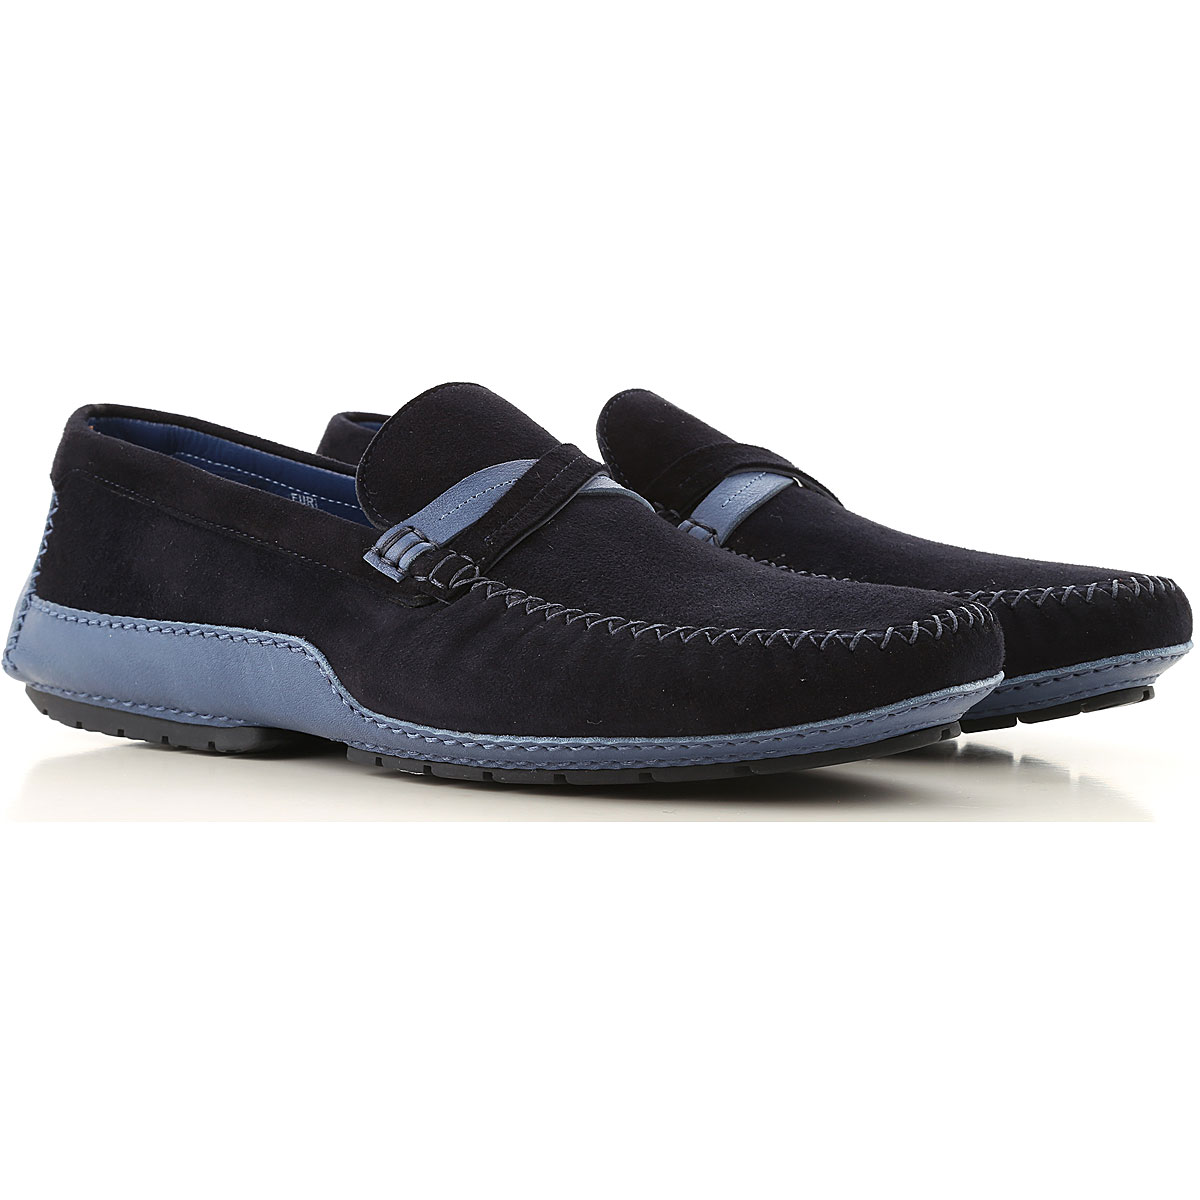 Moreschi Loafers for Men On Sale, Dark Midnight Blue, Leather, 2019, 10.5 11 11.5 12 13 6 7 8.5 9 9.5